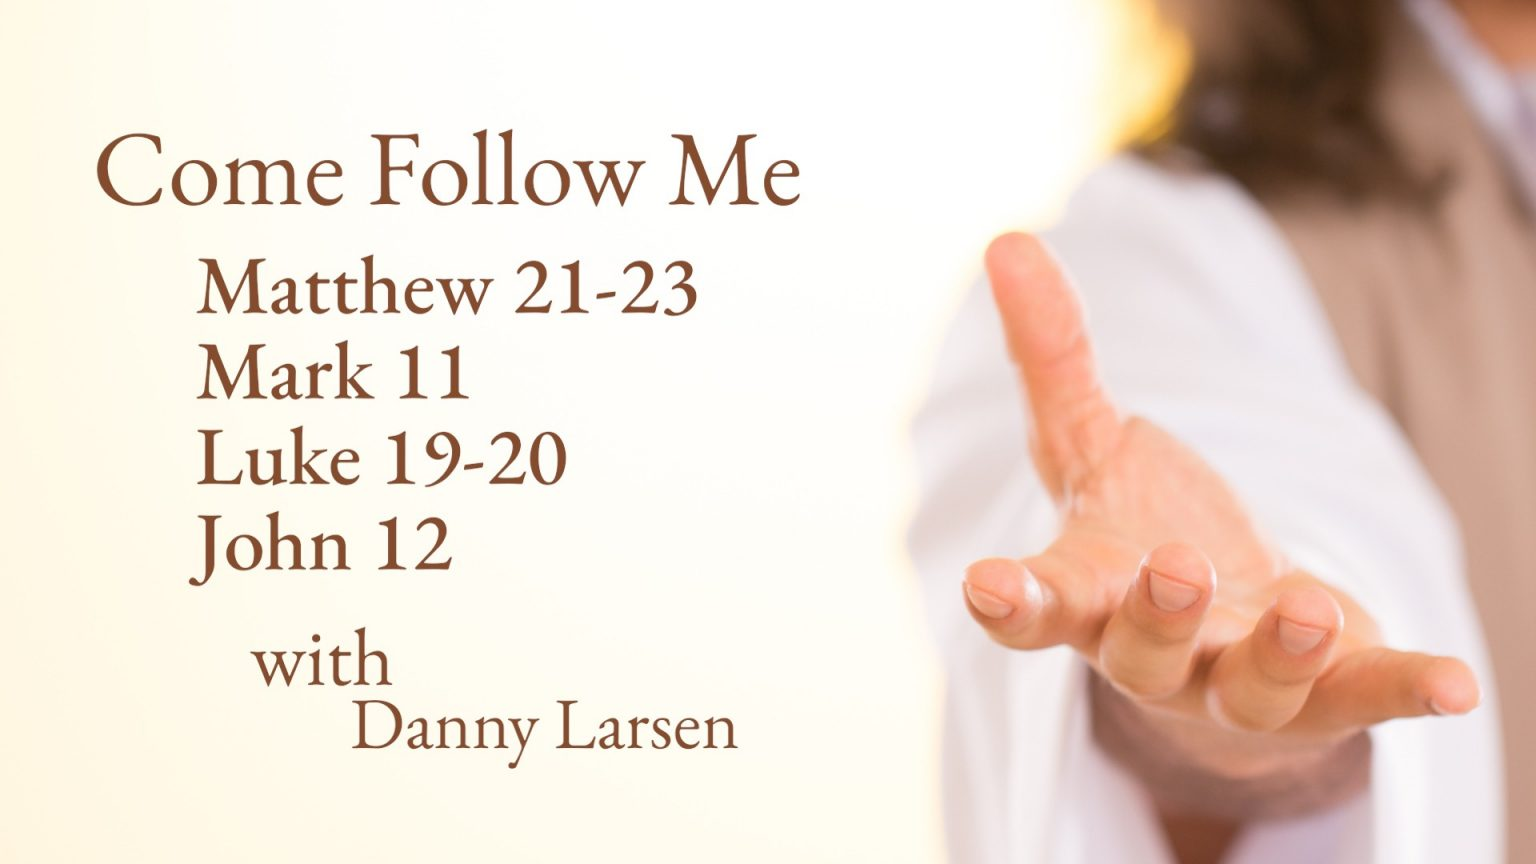 Matthew 21-23; Mark 11; Luke 19-20; John 12 – Come Follow Me